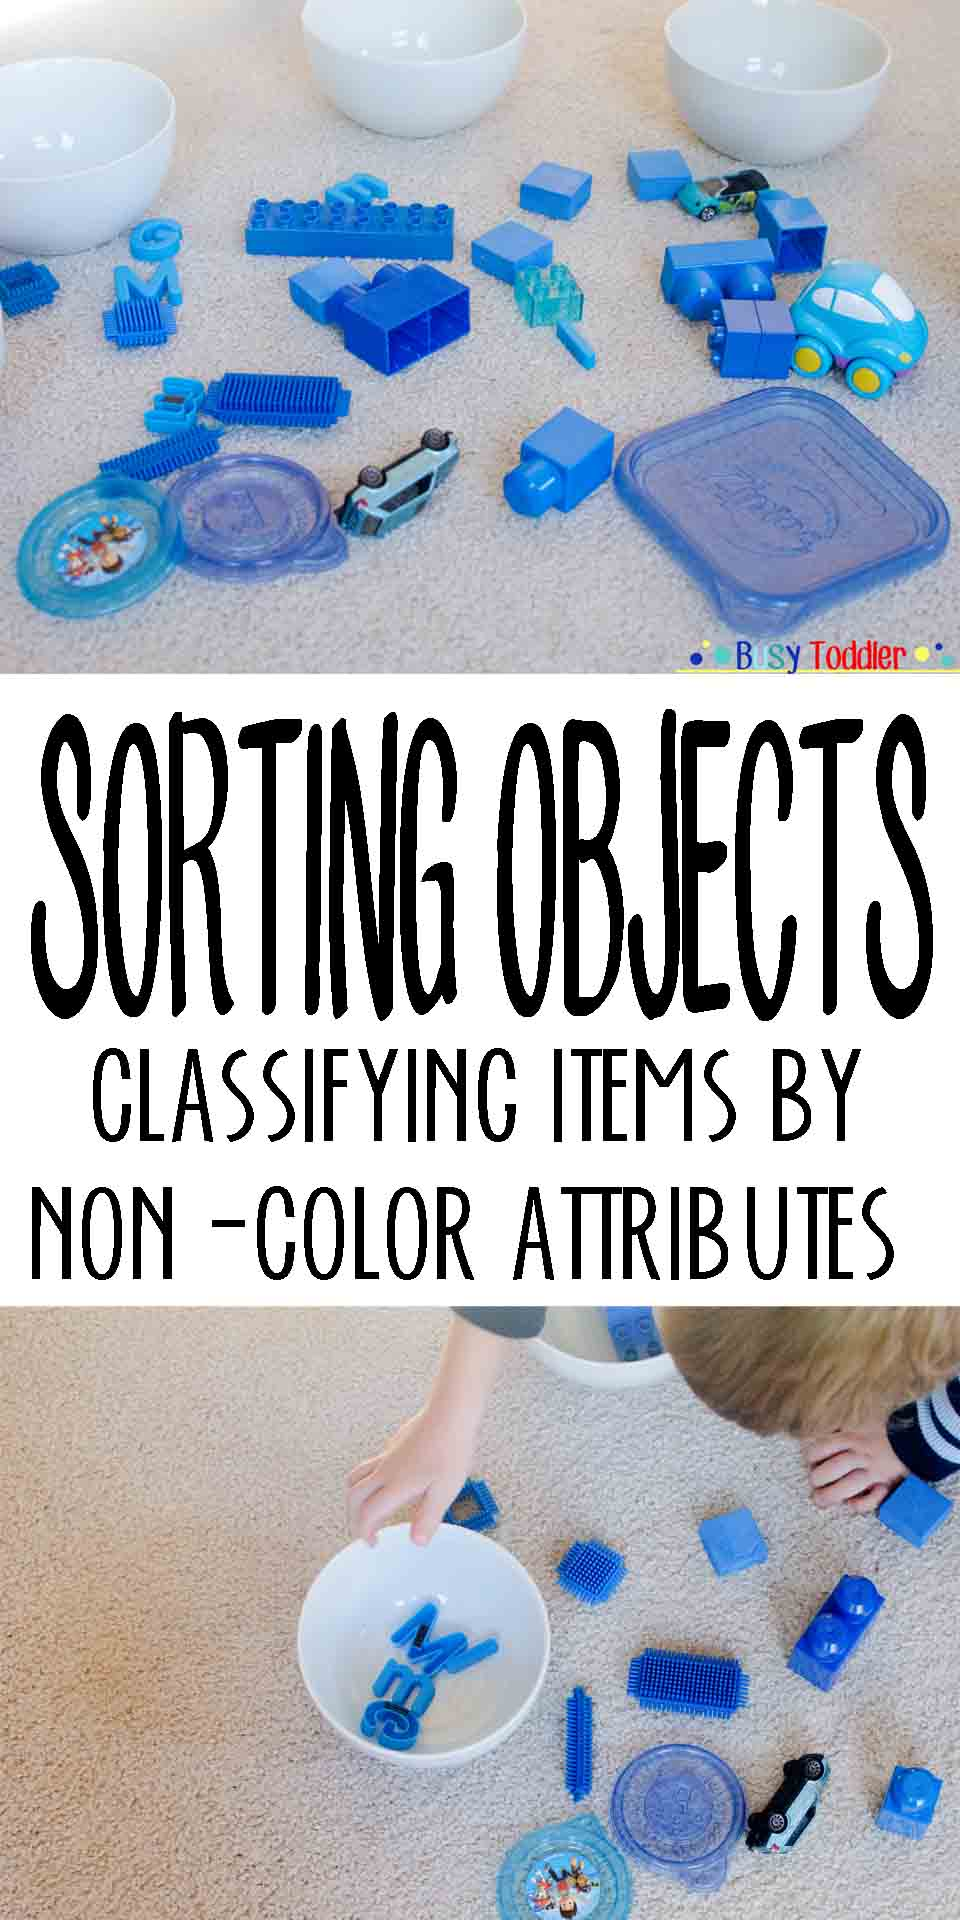 Sorting Objects: Classifying items by non-color attributes